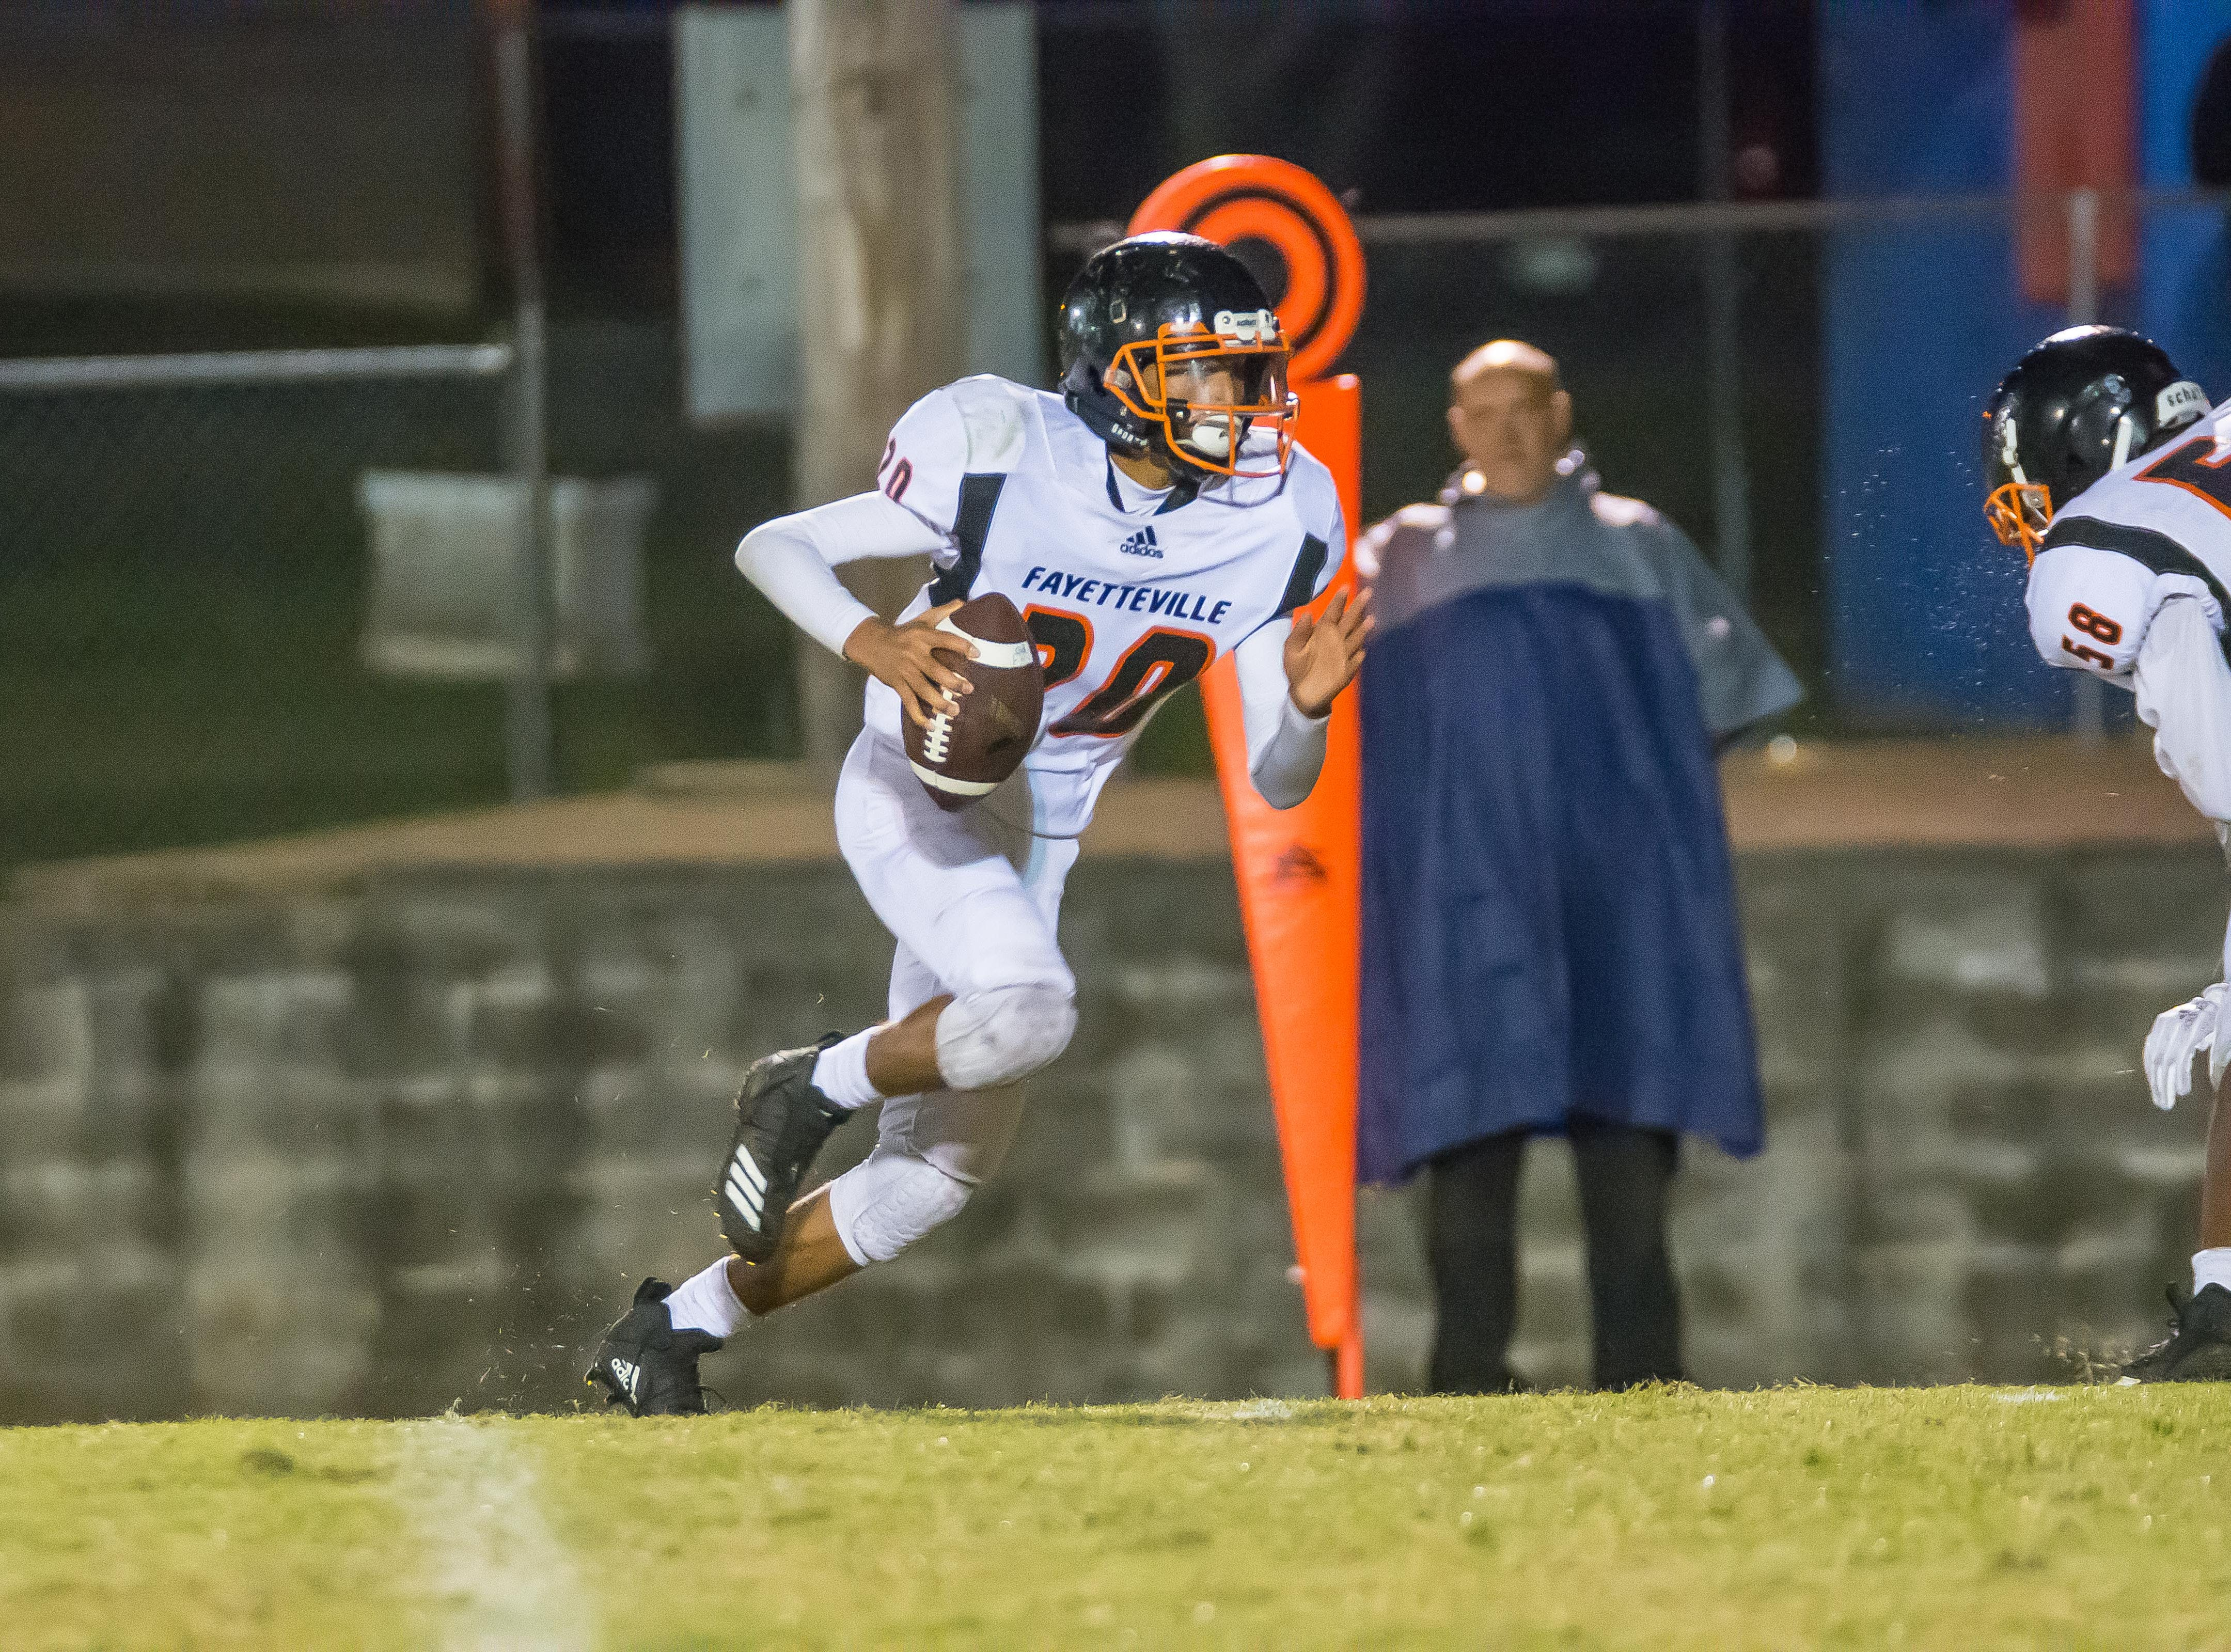 Fayetteville sophomore Zayshon Pullen runs the football against Harpeth.